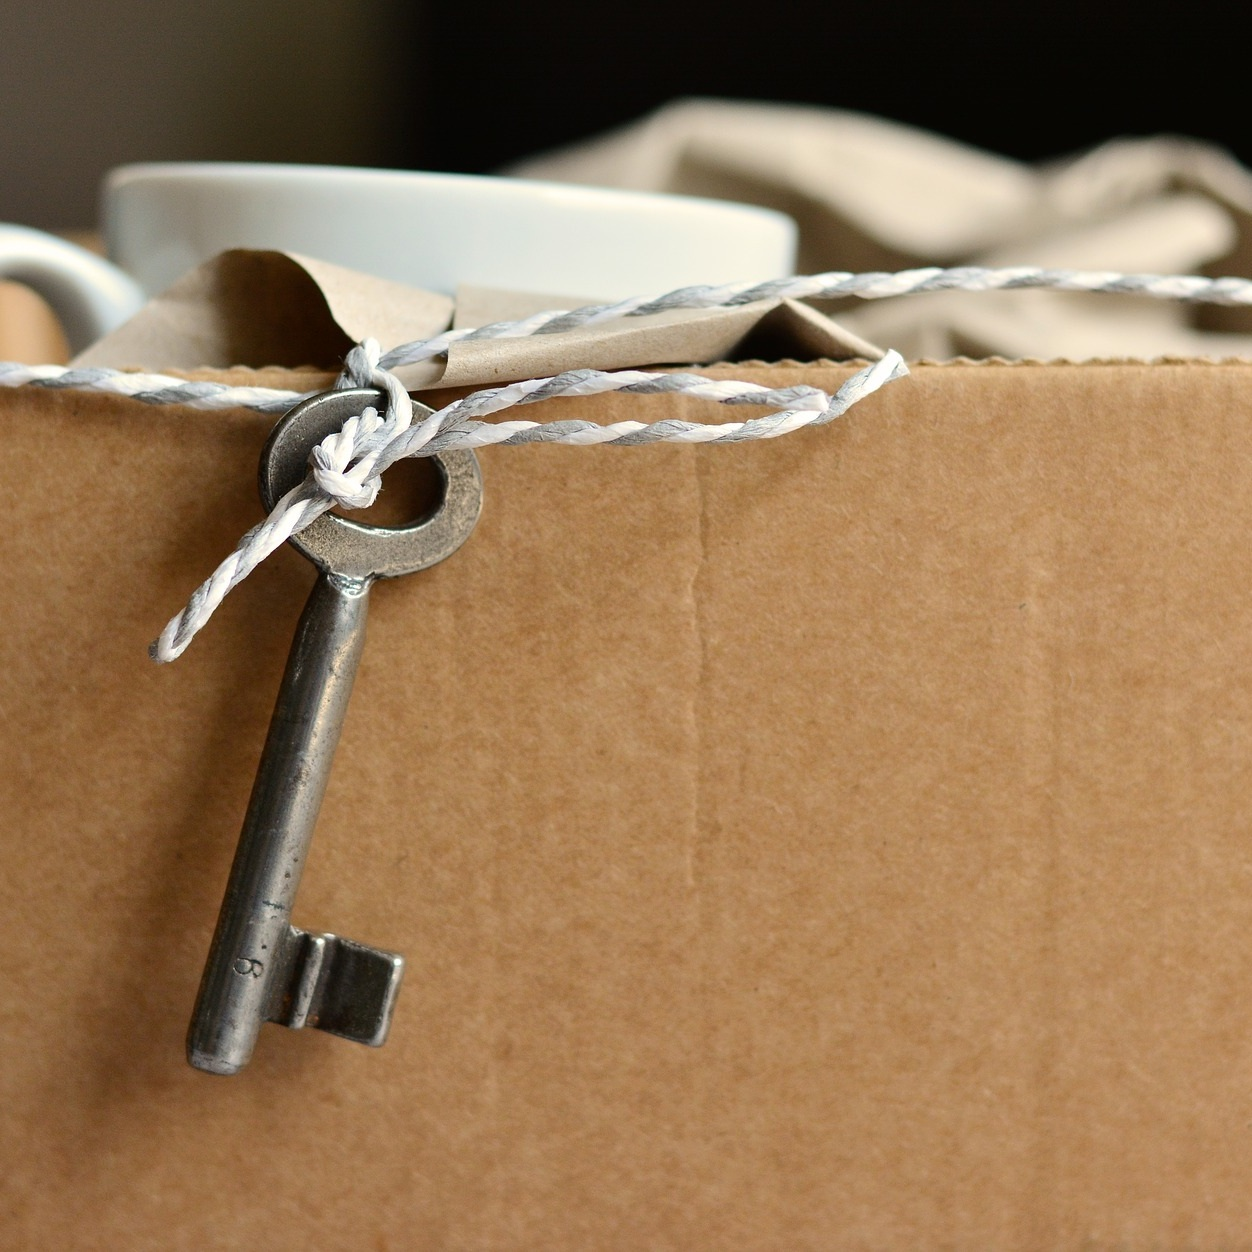 are you RELOCATING OR moving? - You're planning a move but don't know where to begin, don't worry we can help you